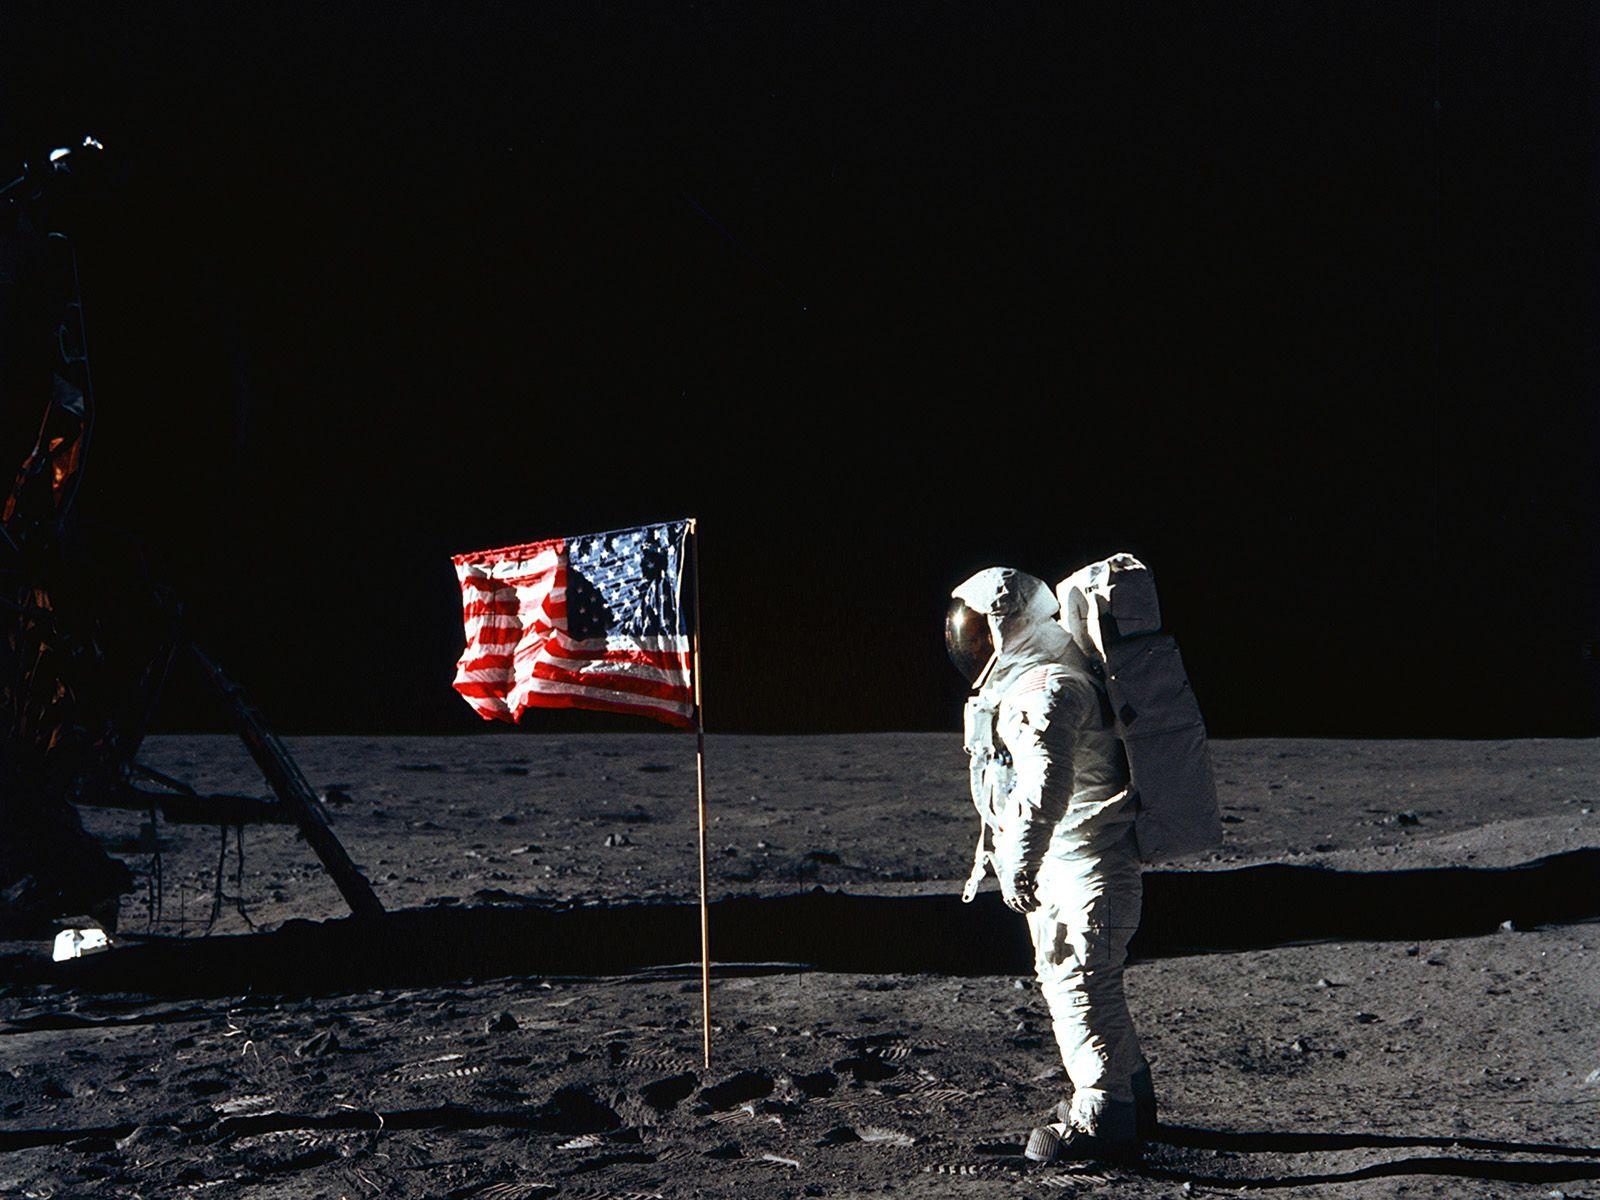 apollo 11 moon landing hoax - photo #5